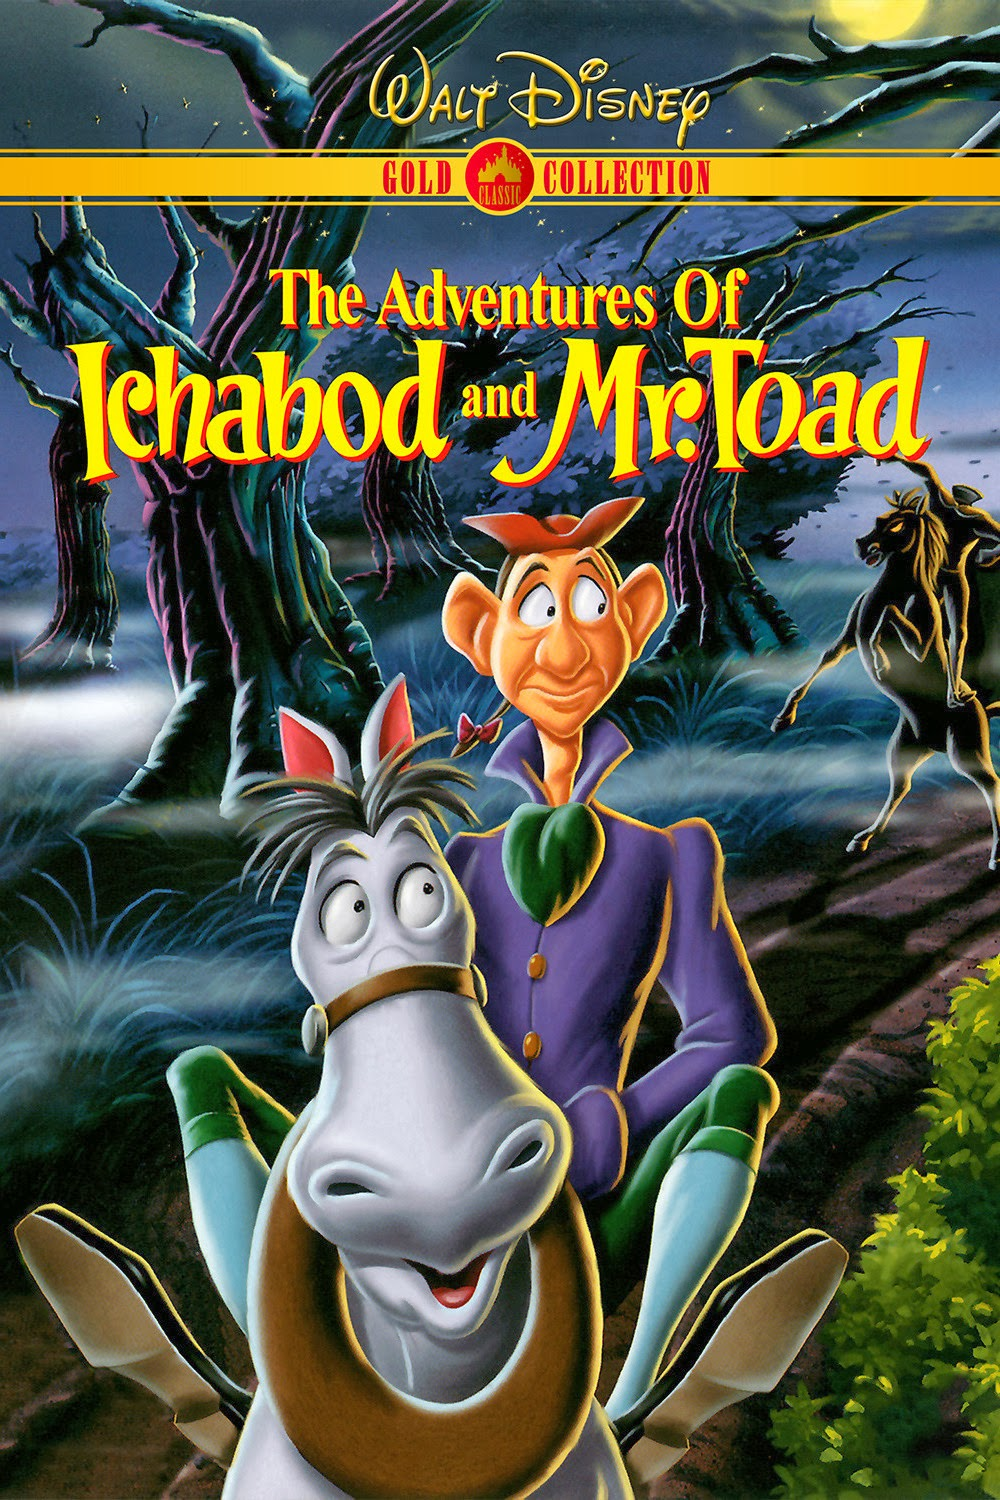 Watch The Adventures of Ichabod and Mr. Toad (1949) Online For Free Full Movie English Stream